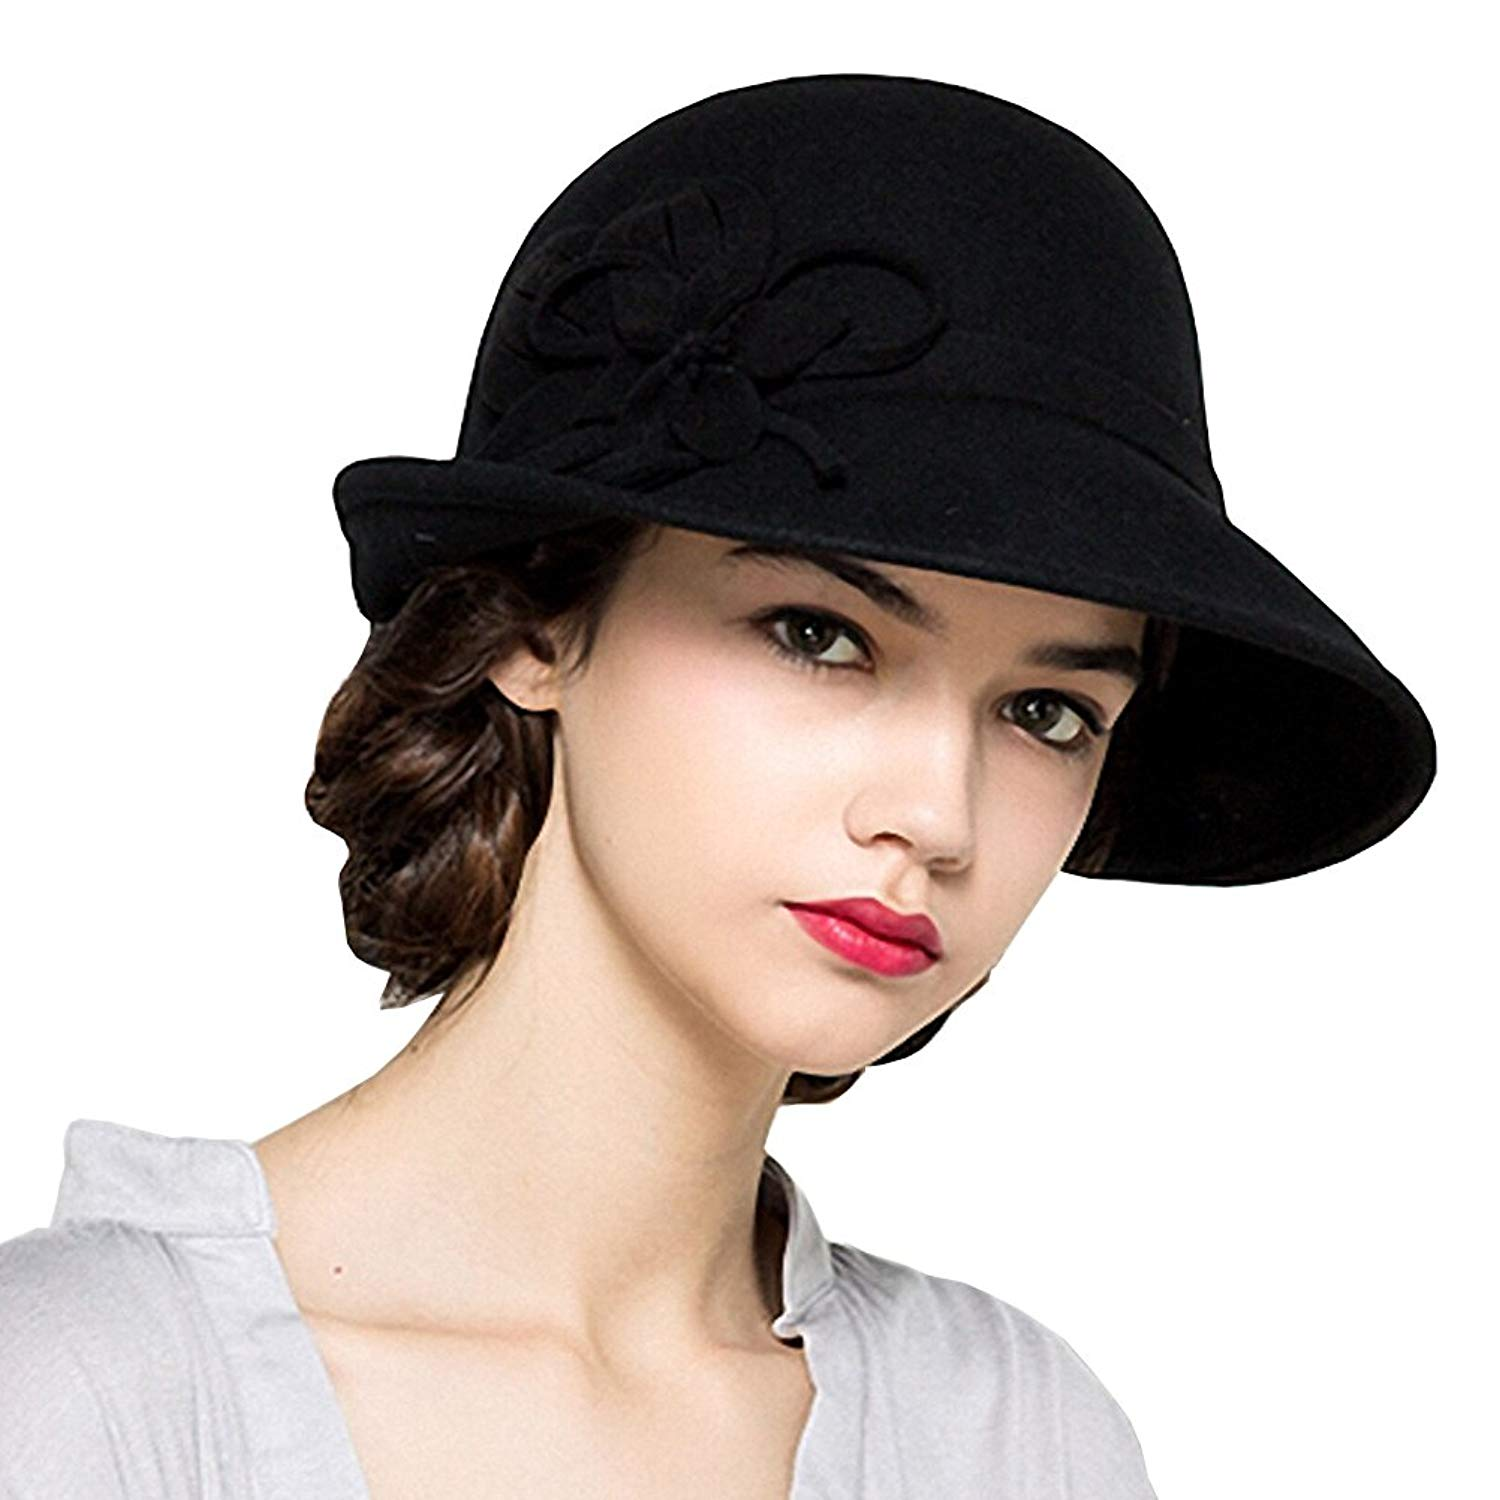 1920s Hat Styles for Women- History Beyond the Cloche Hat